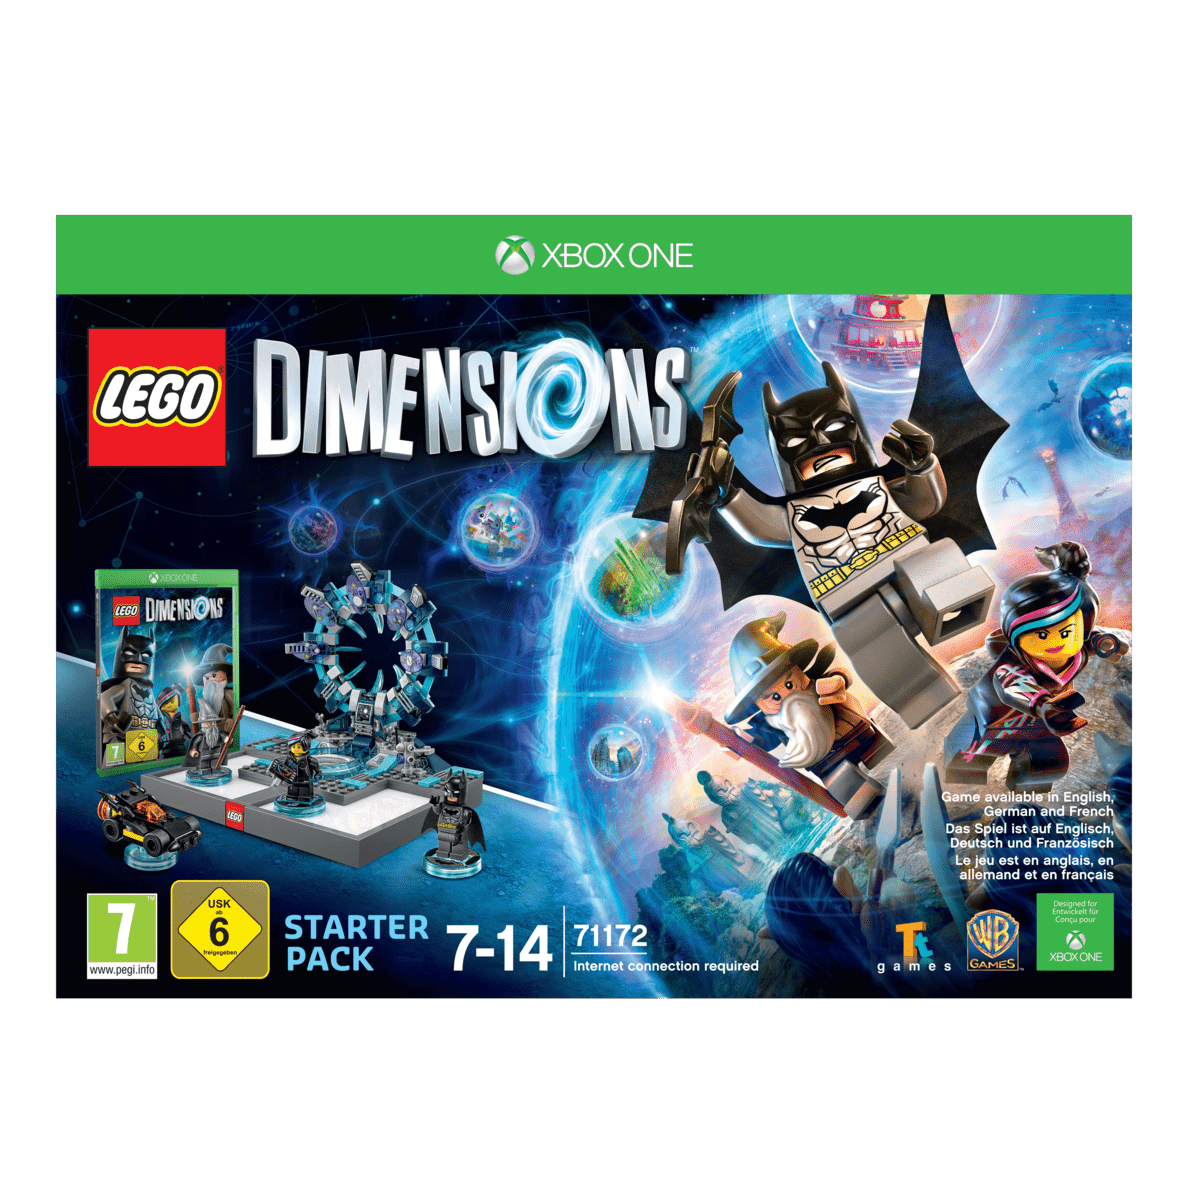 LEGO DIMENSIONS Dimensions Starter Pack XBOXONE Smart Toy   LEGO Dimensions